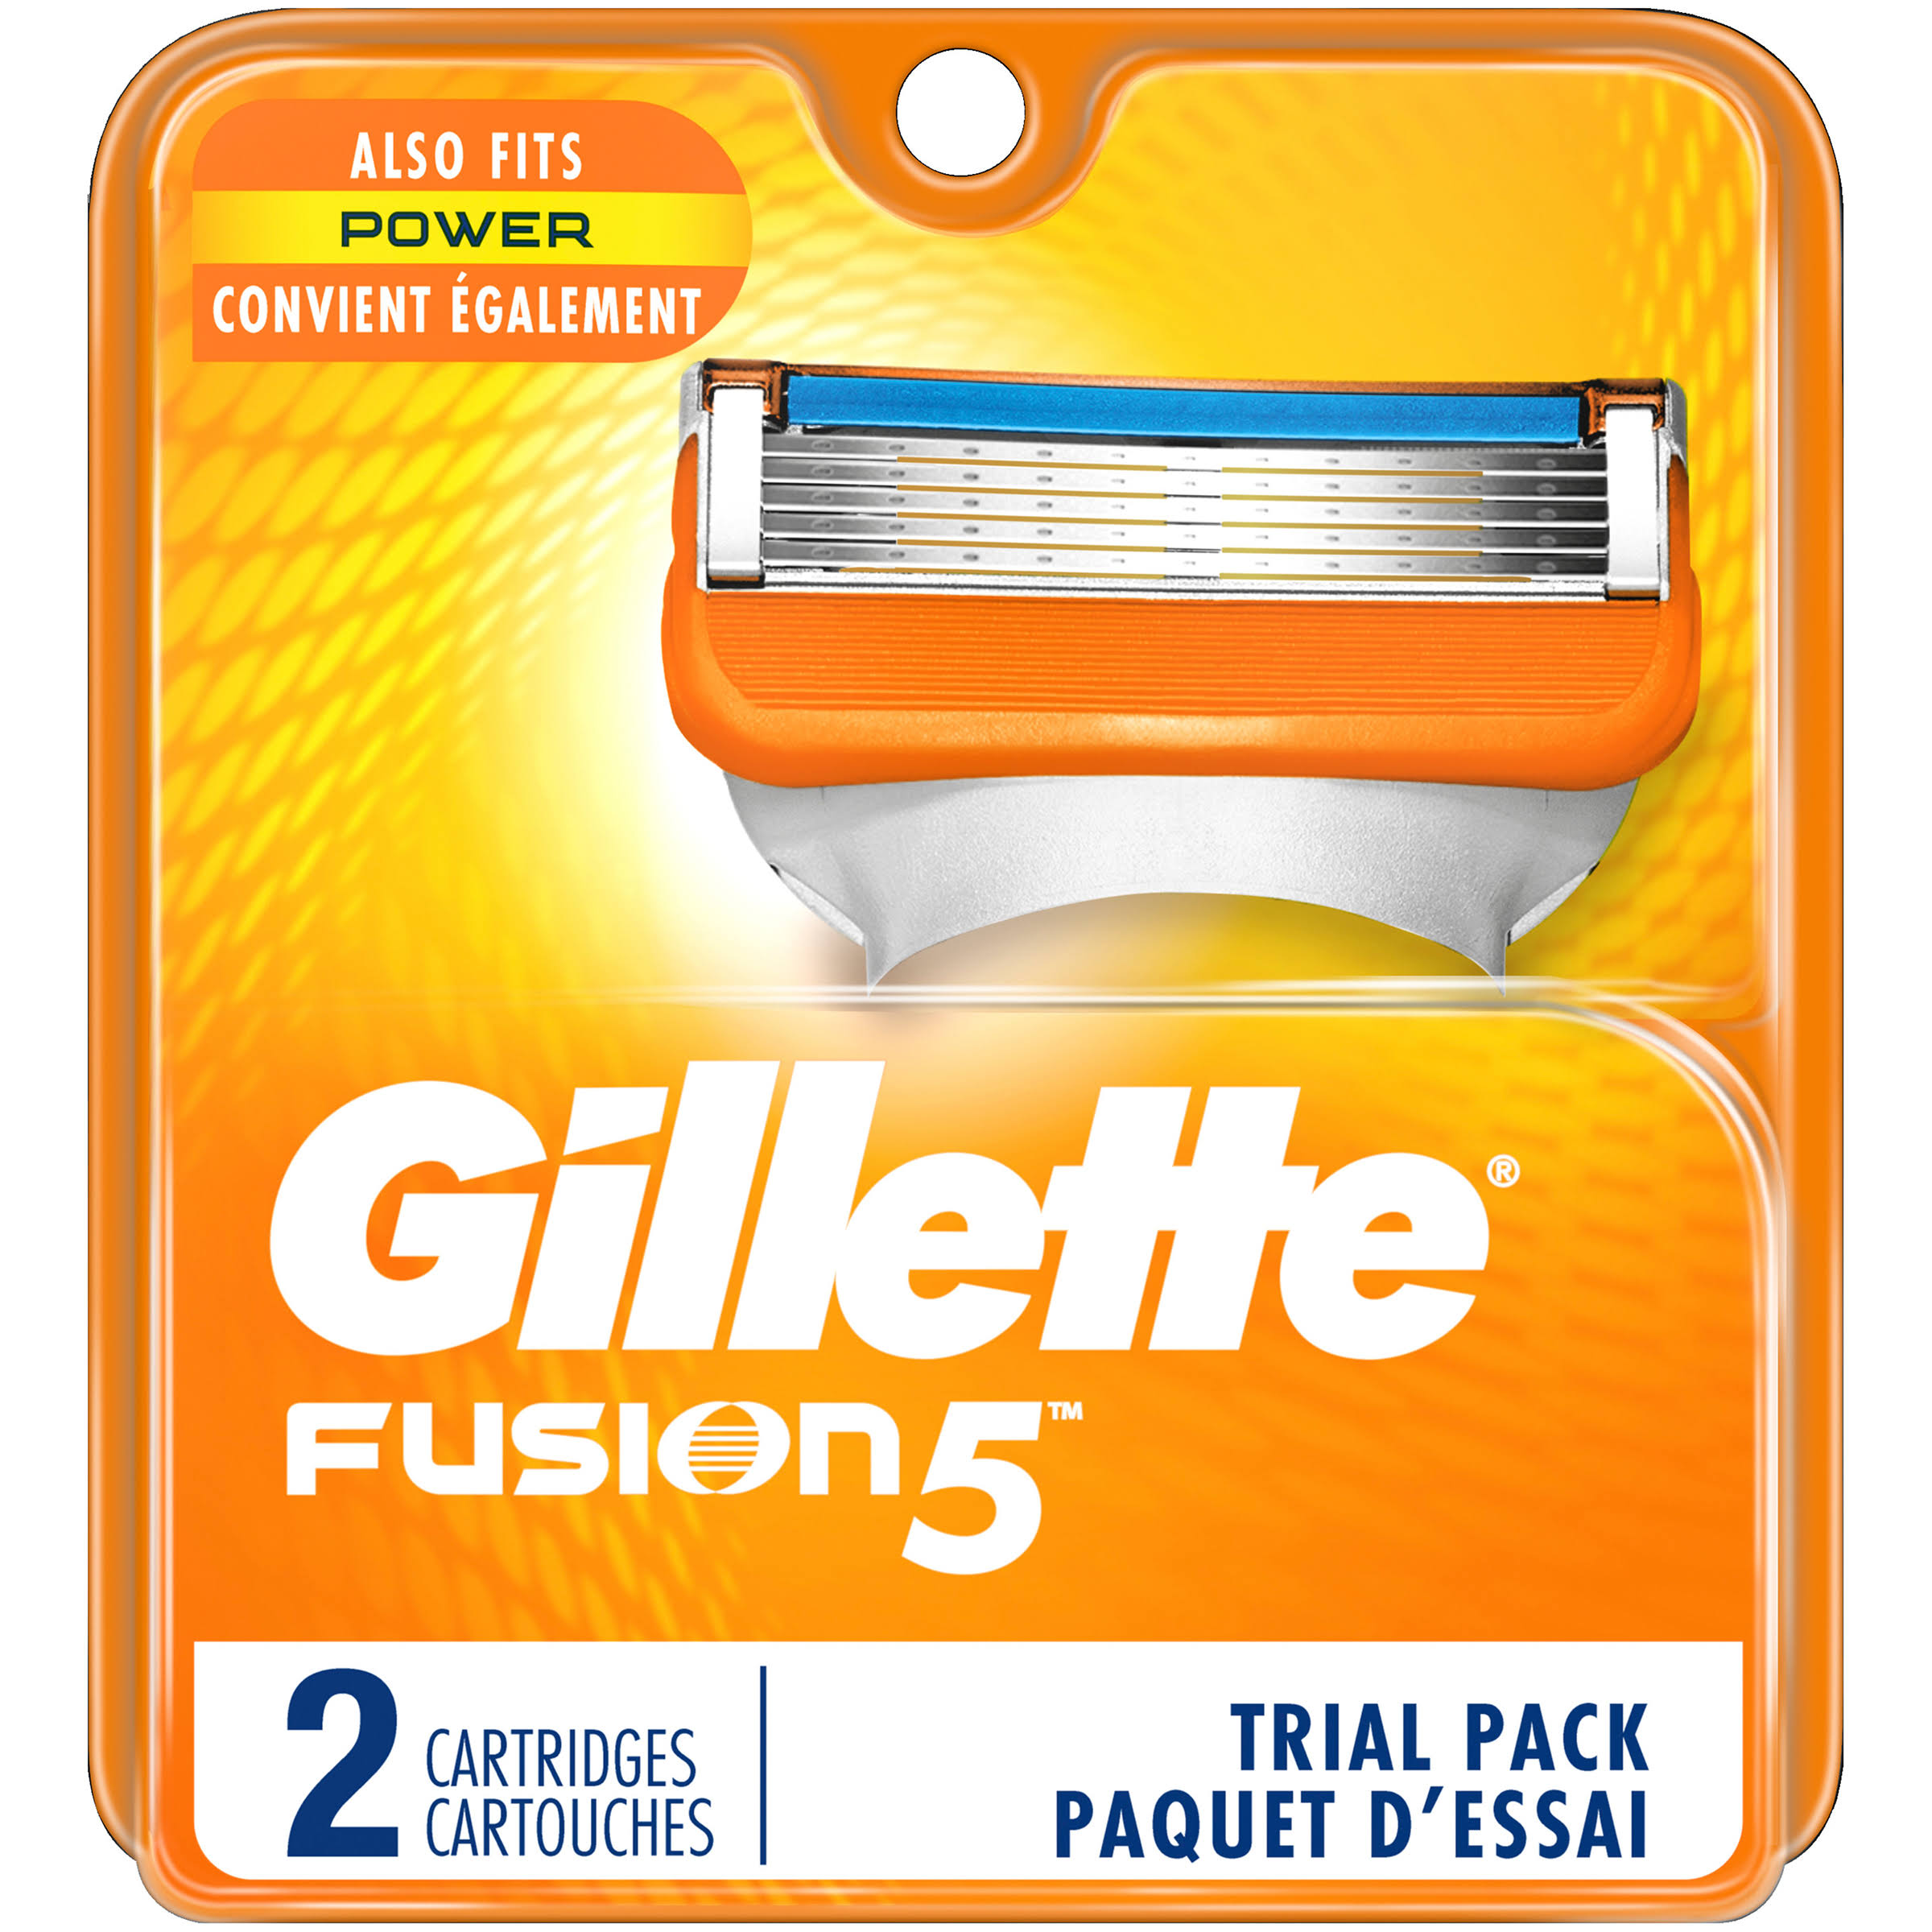 Gillette Fusion 5 Cartridges Trial Pack - 2ct